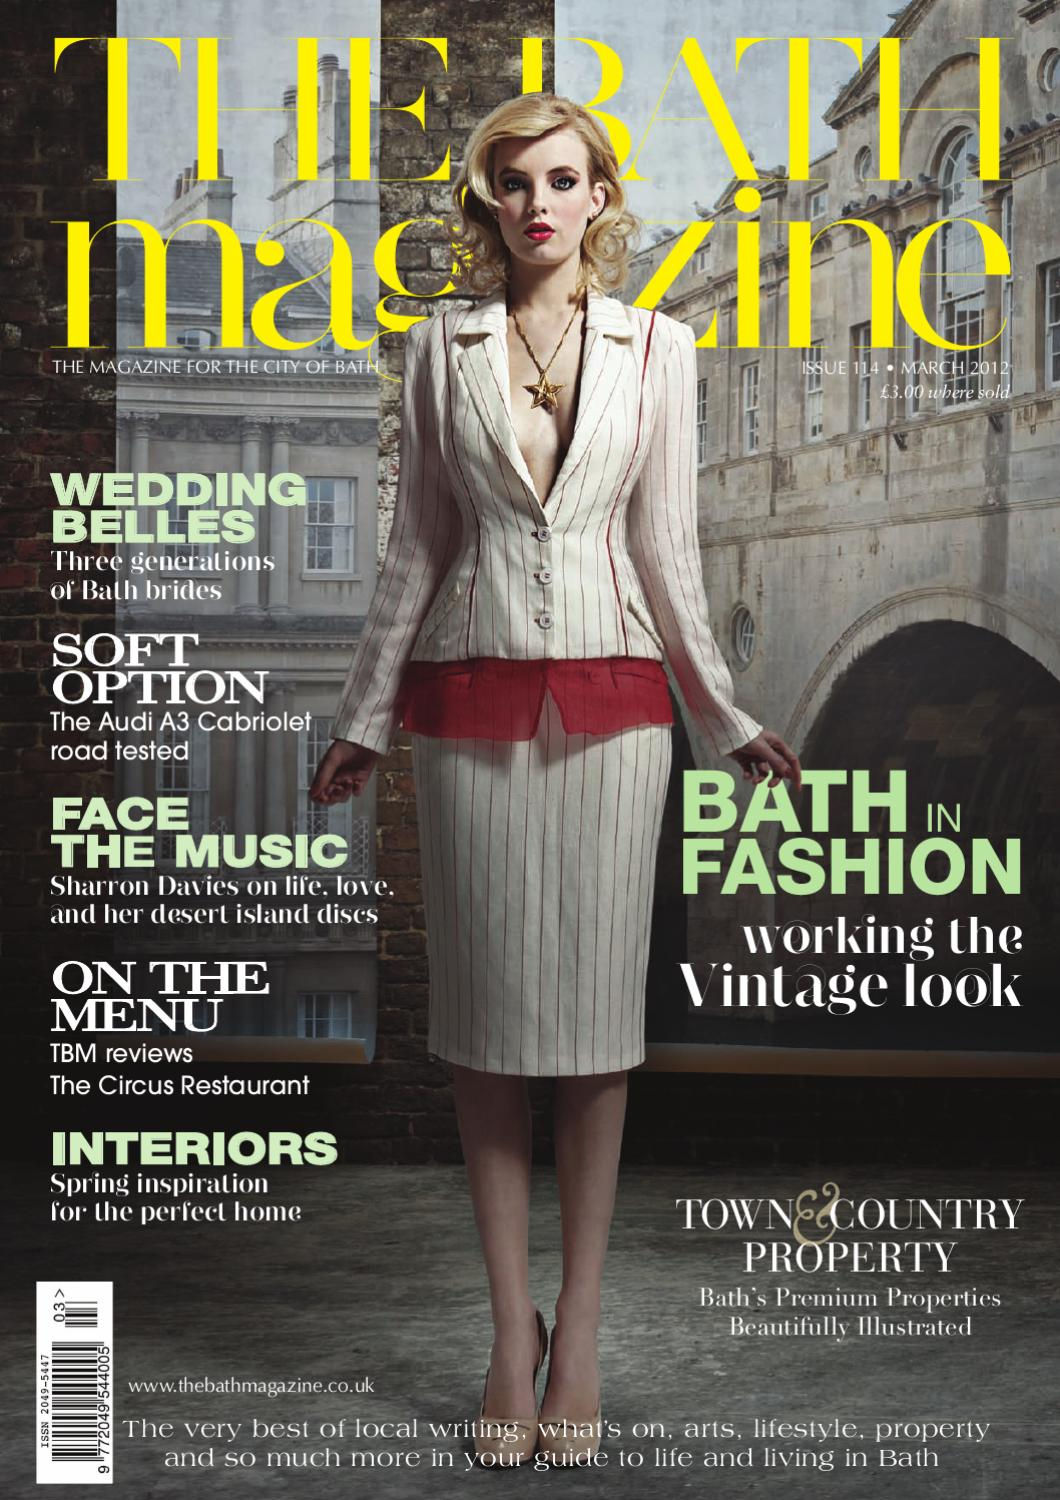 7064227132a96 The Bath Magazine March 2012 by MC Publishing Limited - issuu